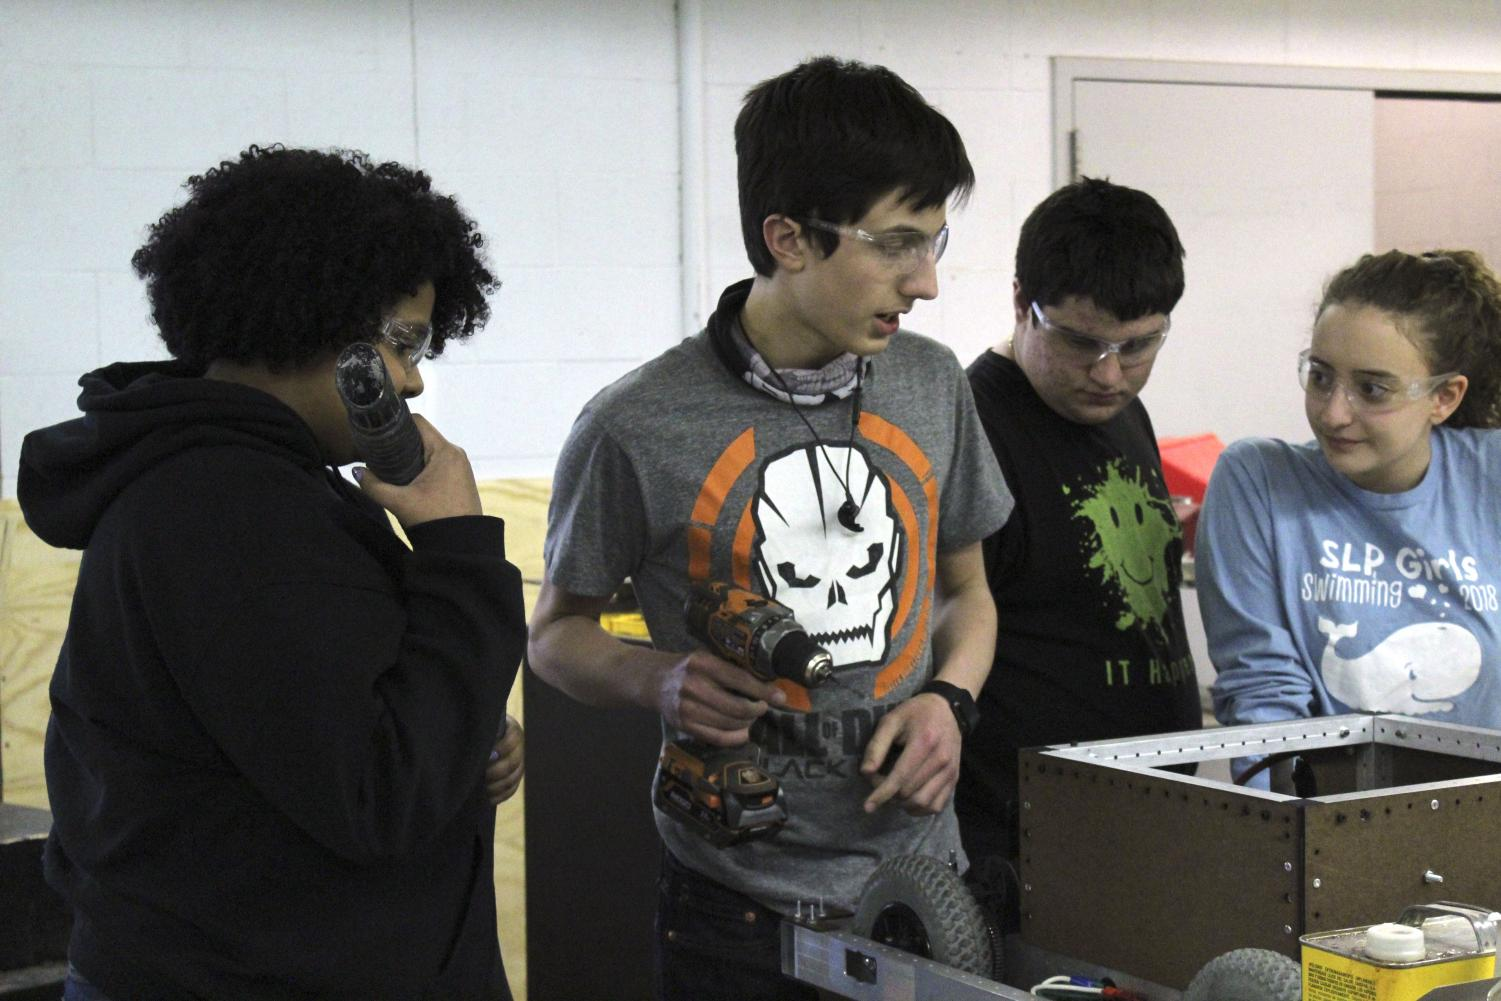 Seniors Serena Moore, Alessandro Giannetti, Anthony David, and sophomore Julia Salita focus on creating their robot for competition Feb. 12. Robotics club will compete on March 29 and 30 at the Williams Arena and Sports Pavillion.